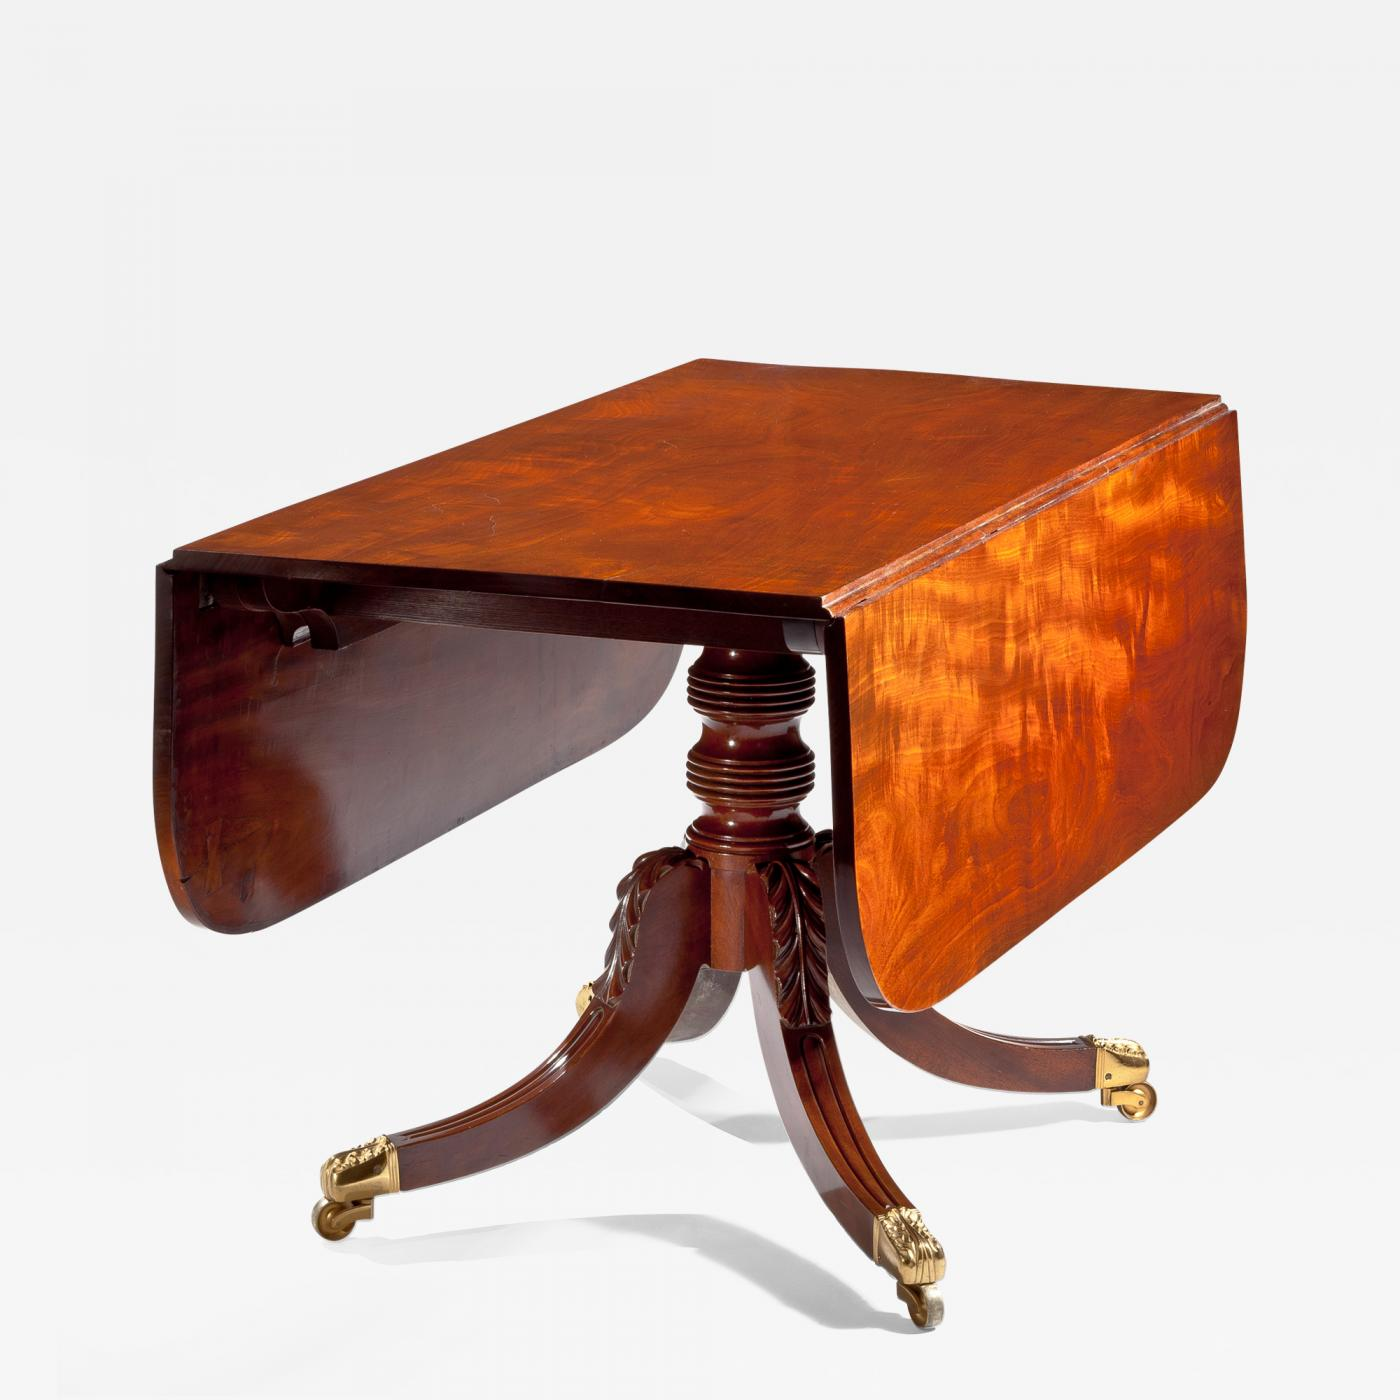 Duncan Phyfe Round Table With Drawer.Duncan Phyfe Fine Sheraton Carved Mahogany Drop Leaf Dining